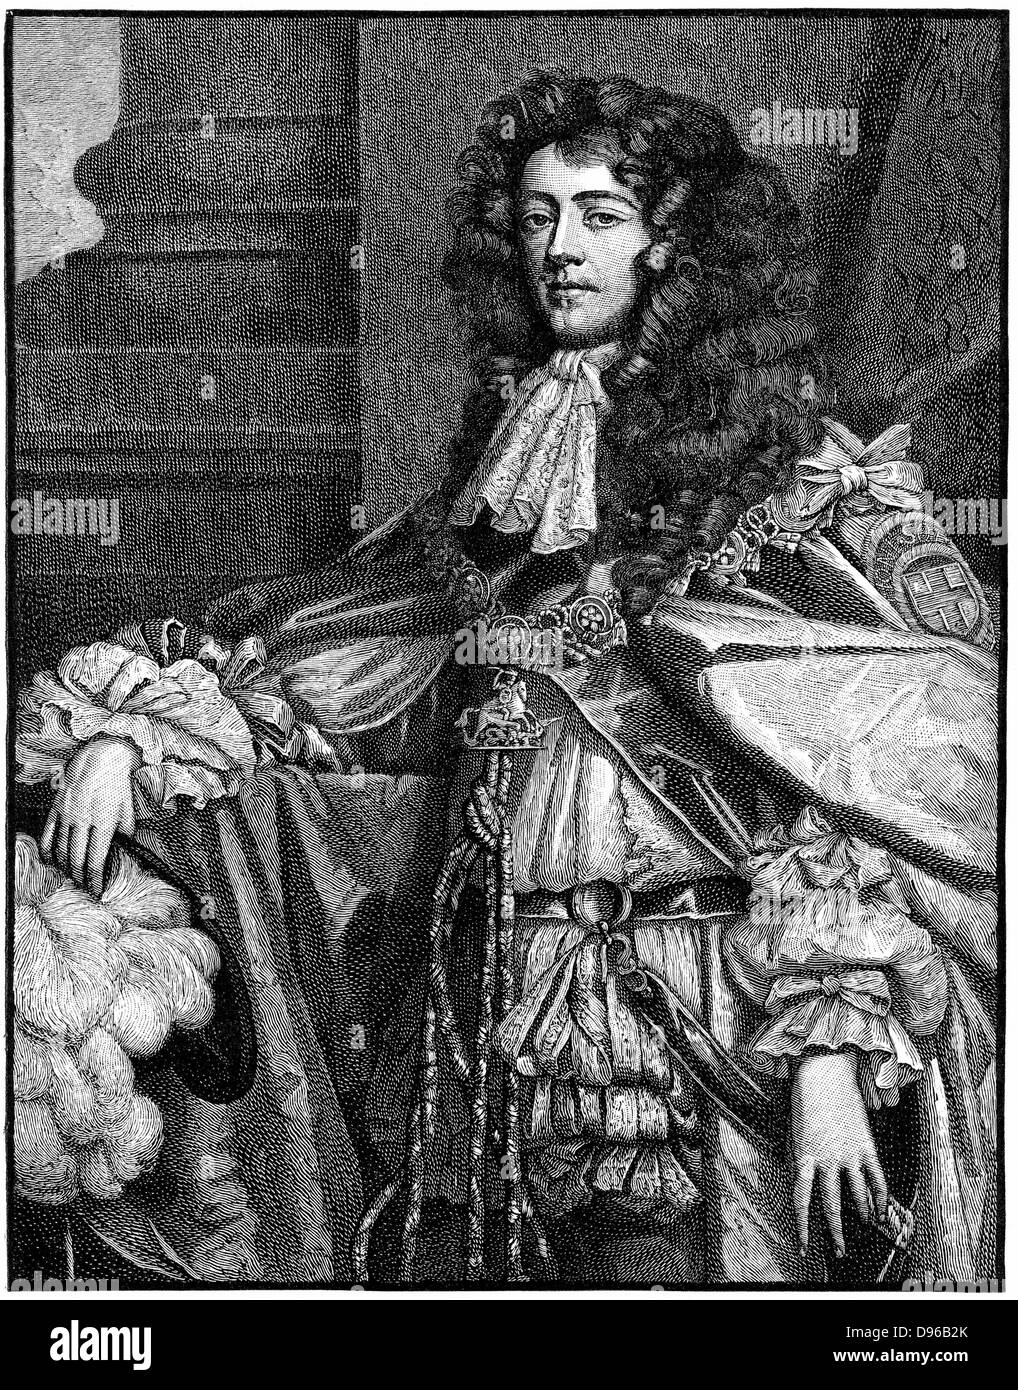 James, Duke of Monmouth (1649-1685) illegitimate son of Charles II and Lucy Walter. Pretender to the thrones of - Stock Image